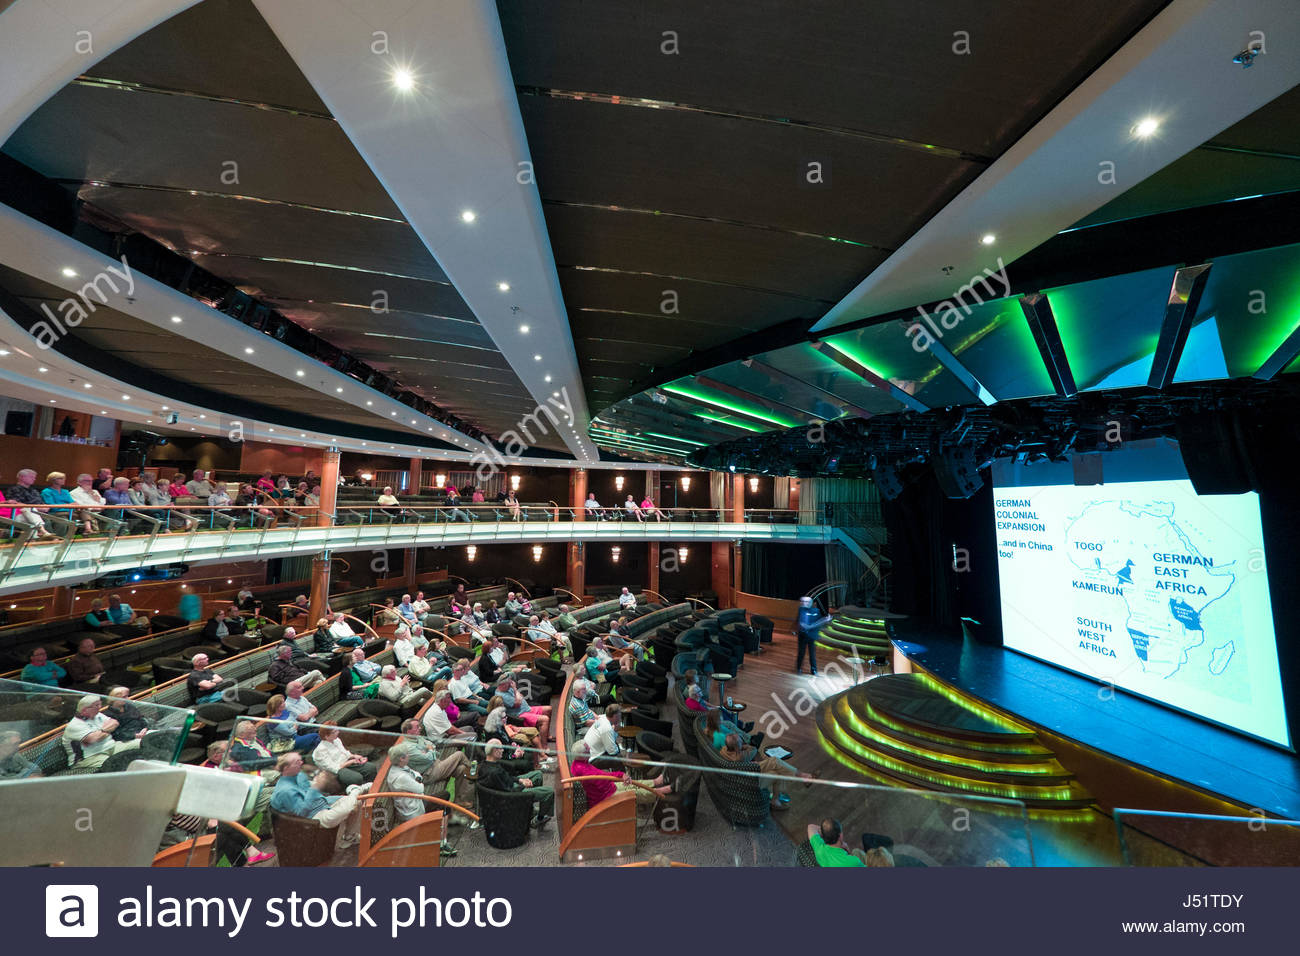 Passengers sitting in the Constellation Theatre aboard the Regent Seven Seas Voyager cruise ship listening to speaker - Stock Image